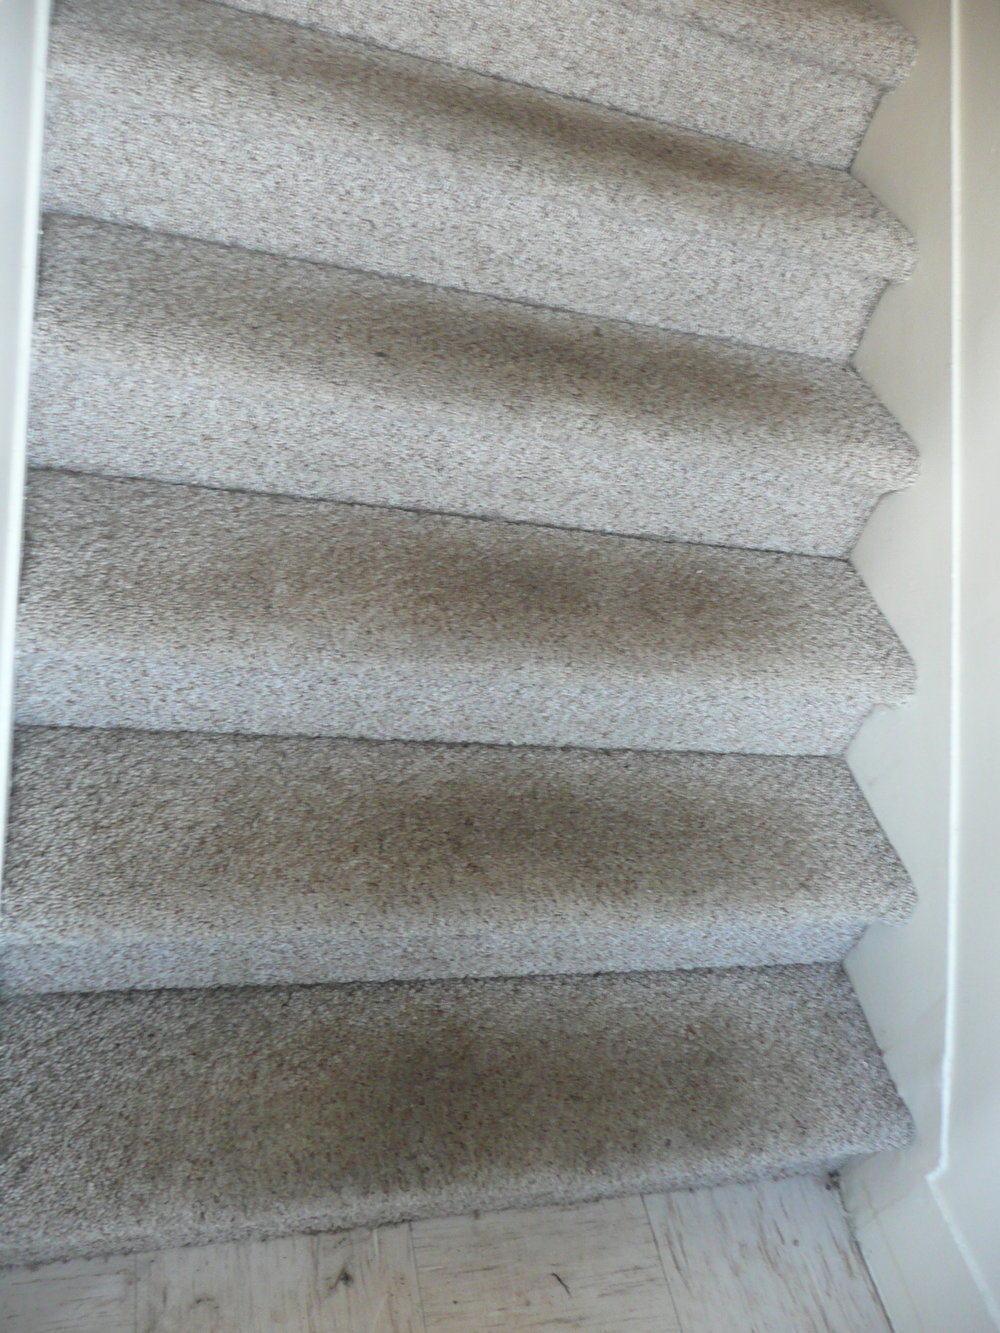 The Trashed Stairway